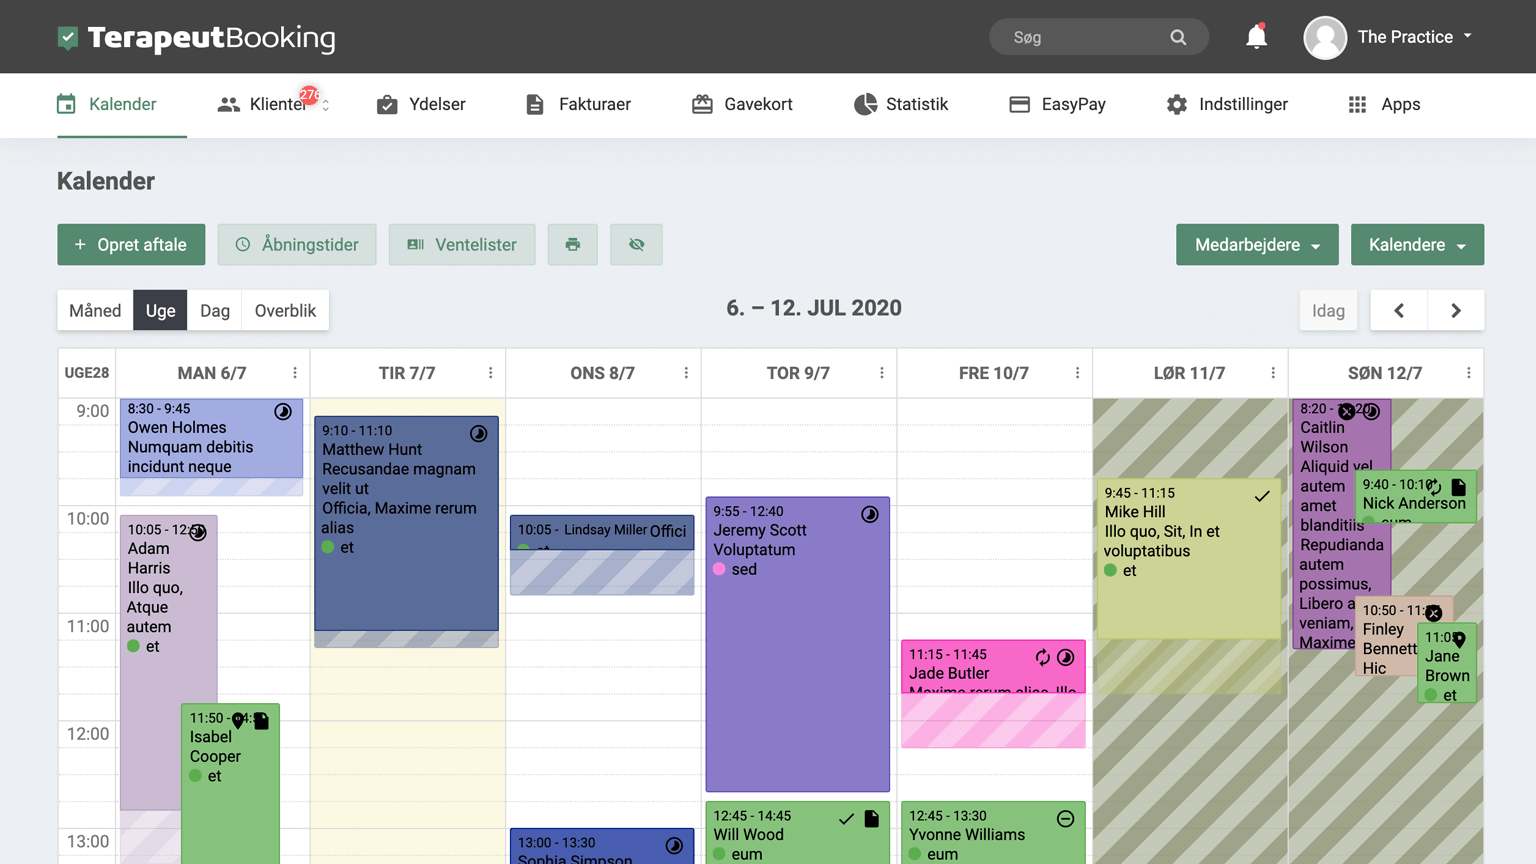 Kalender funktion i Terapeut Booking